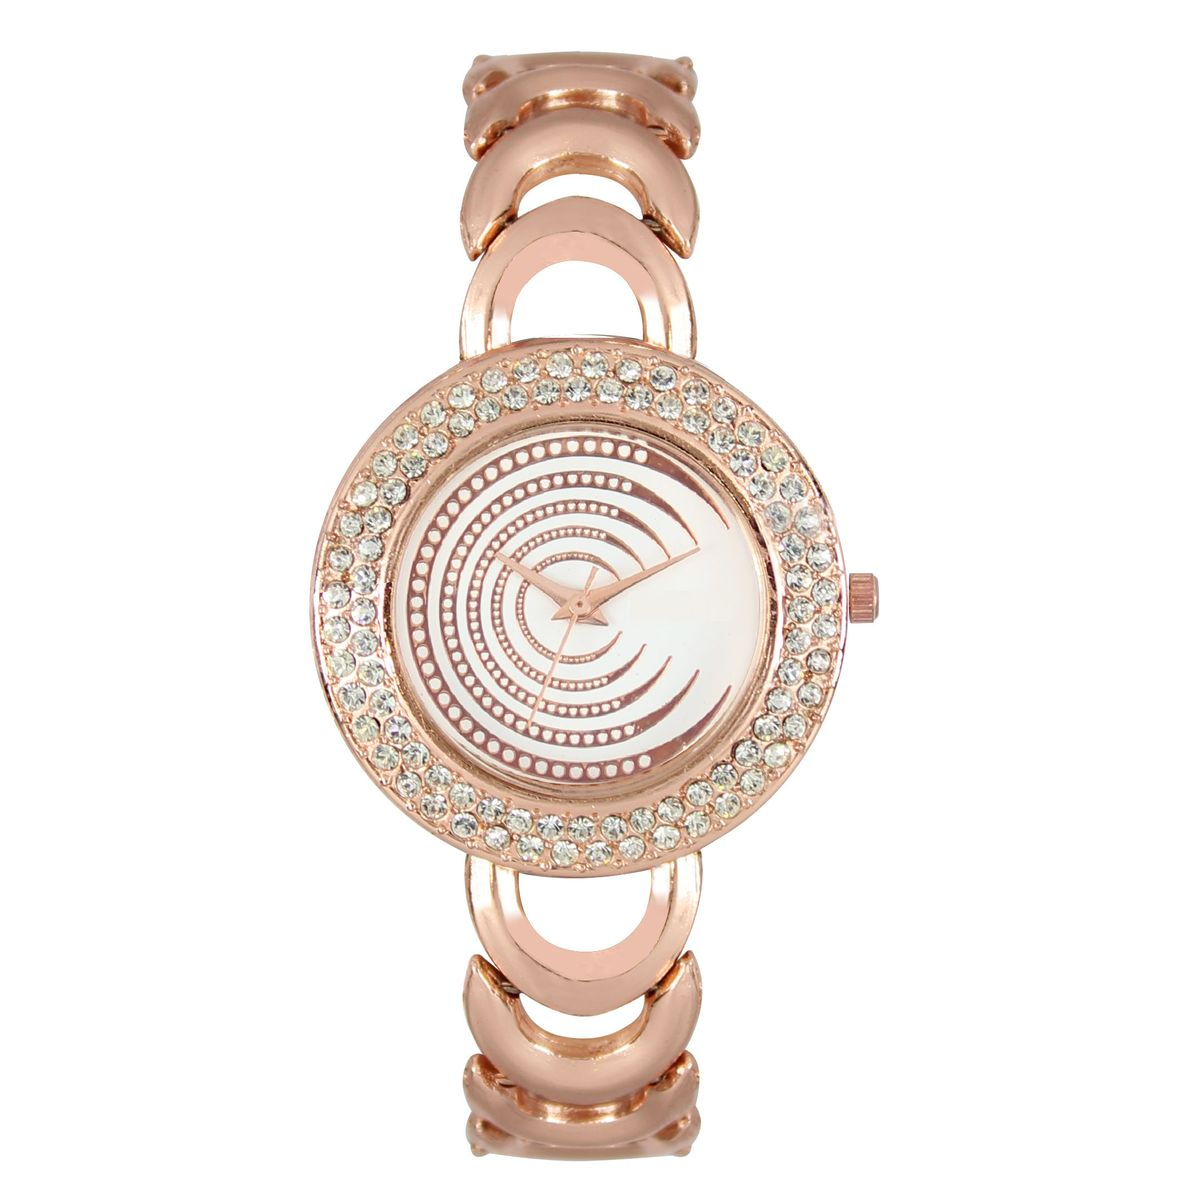 The Shopoholic Analog Diamond Gold Dial Gold Metal Strap Watches For Women-Watches For Girls In Fashion